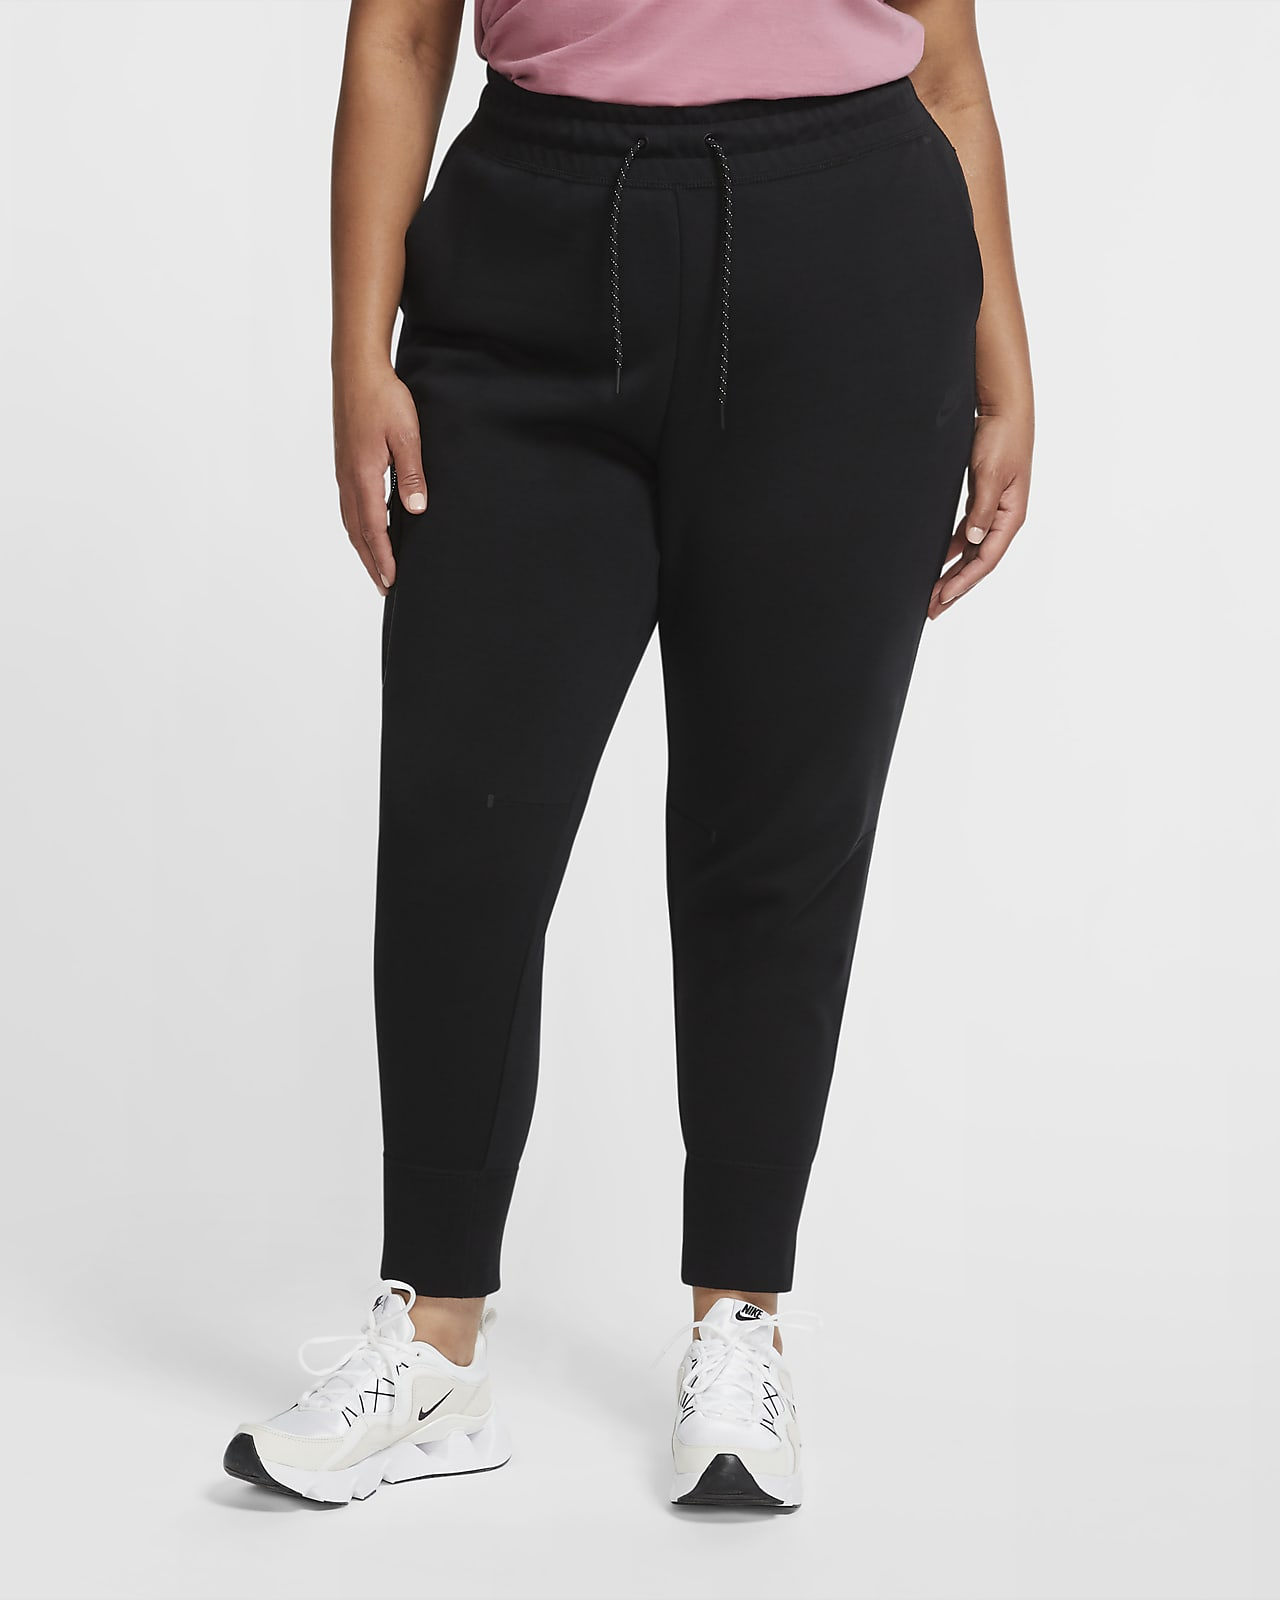 Nike Sportswear Tech Fleece Women's Pants (Plus Size)